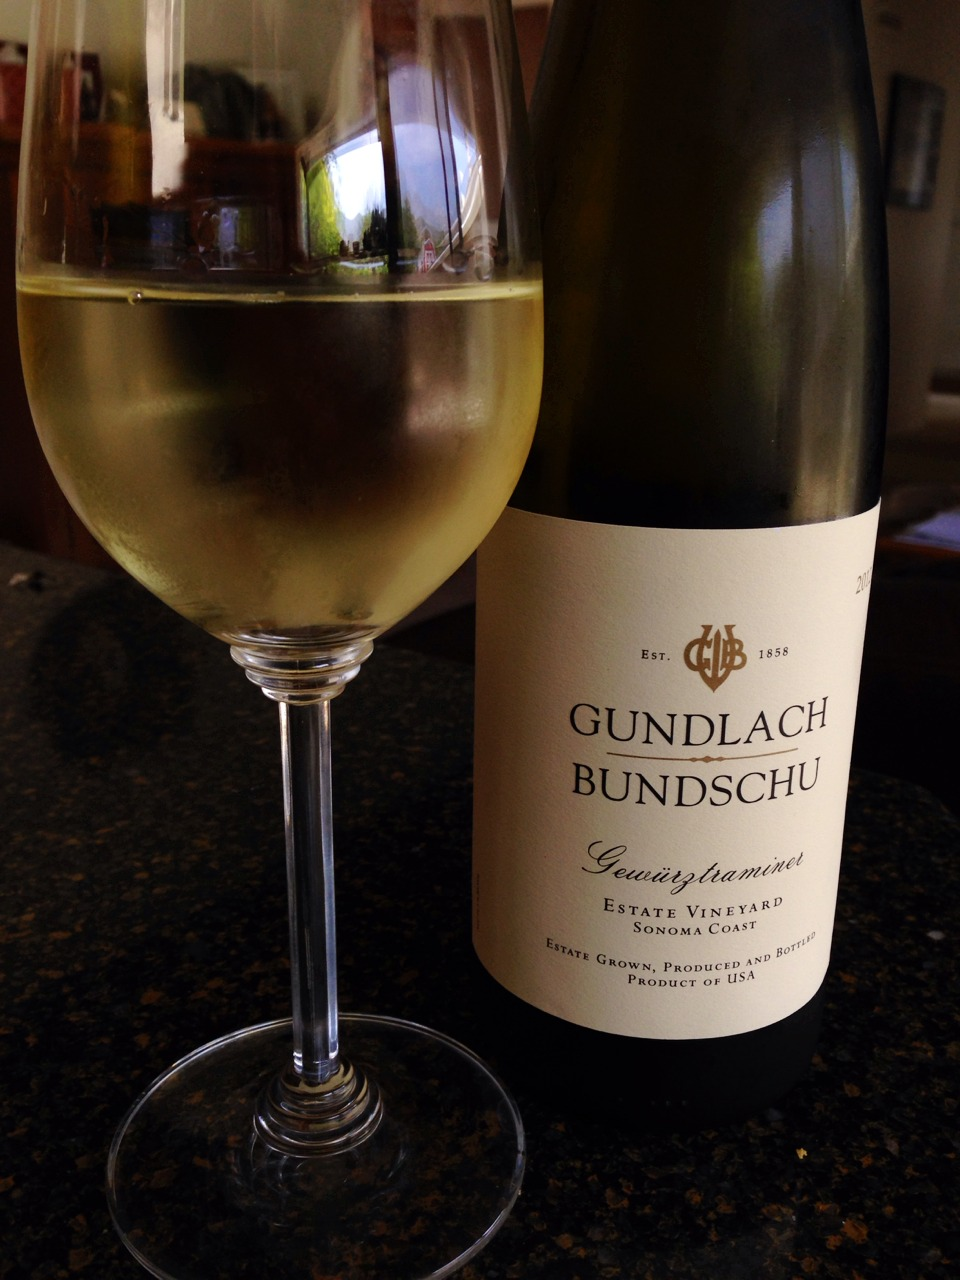 A summery Sonoma Gerwurtztraminer for an almost-summer afternoon